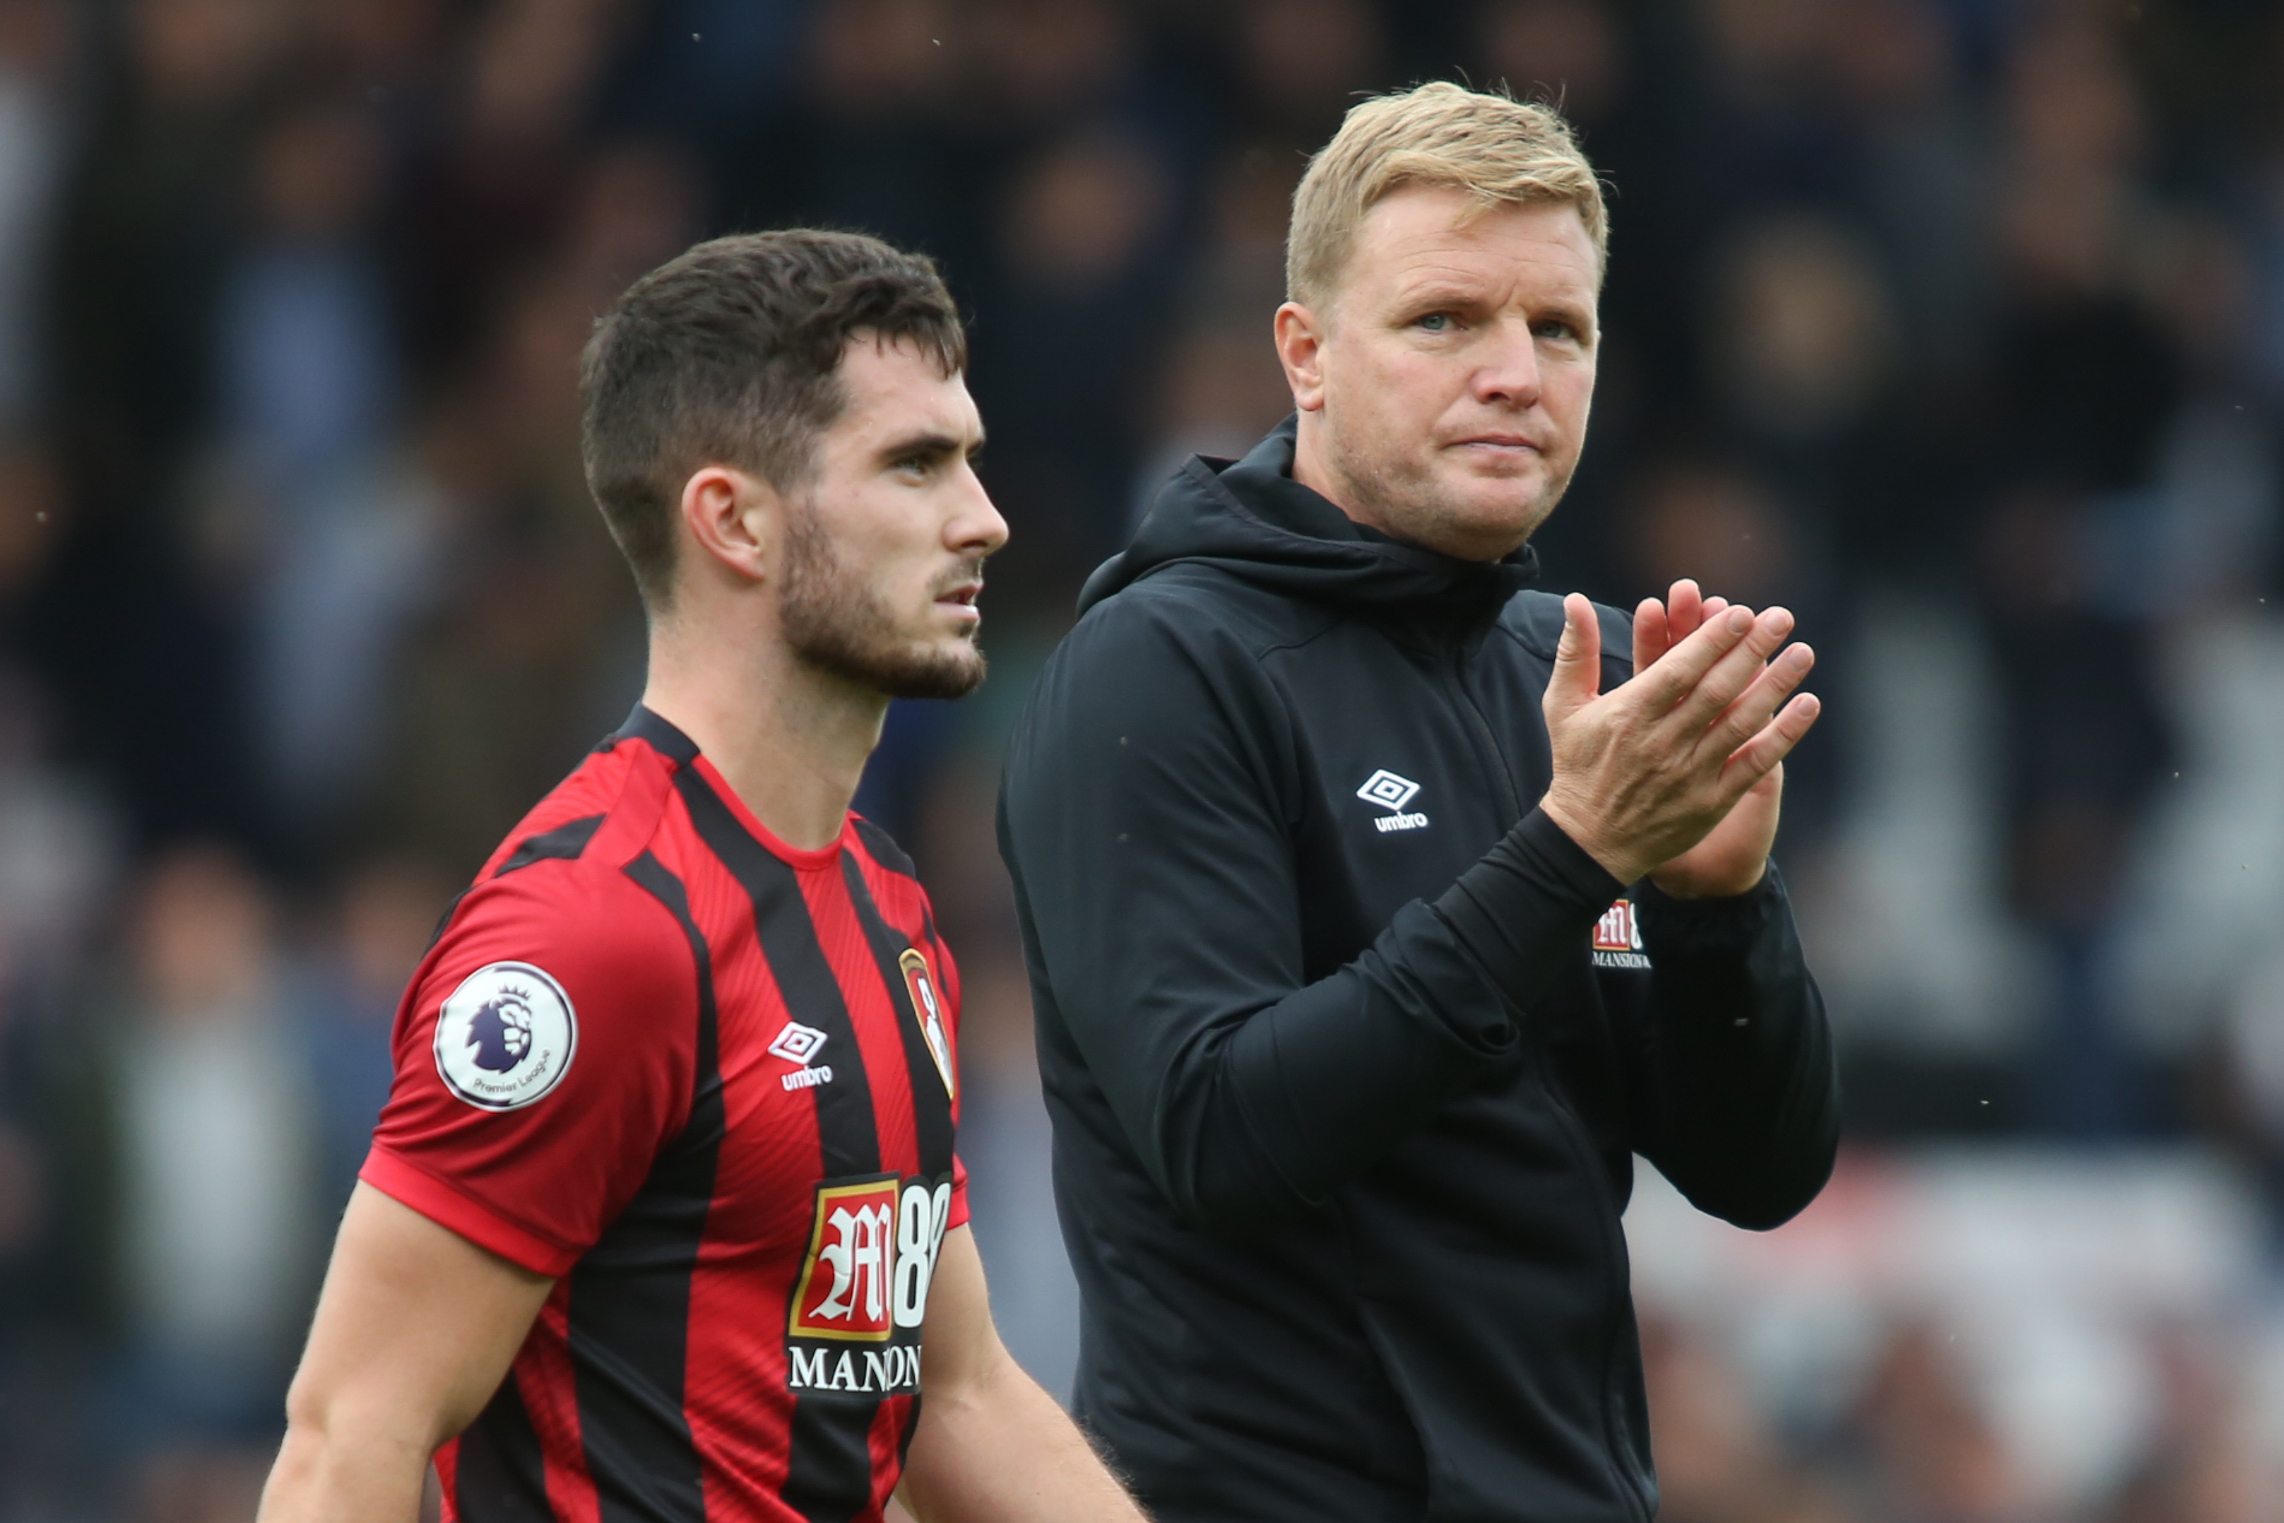 Eddie Howe: Lewis Cook has 'done himself no harm' in battle for regular starting spot